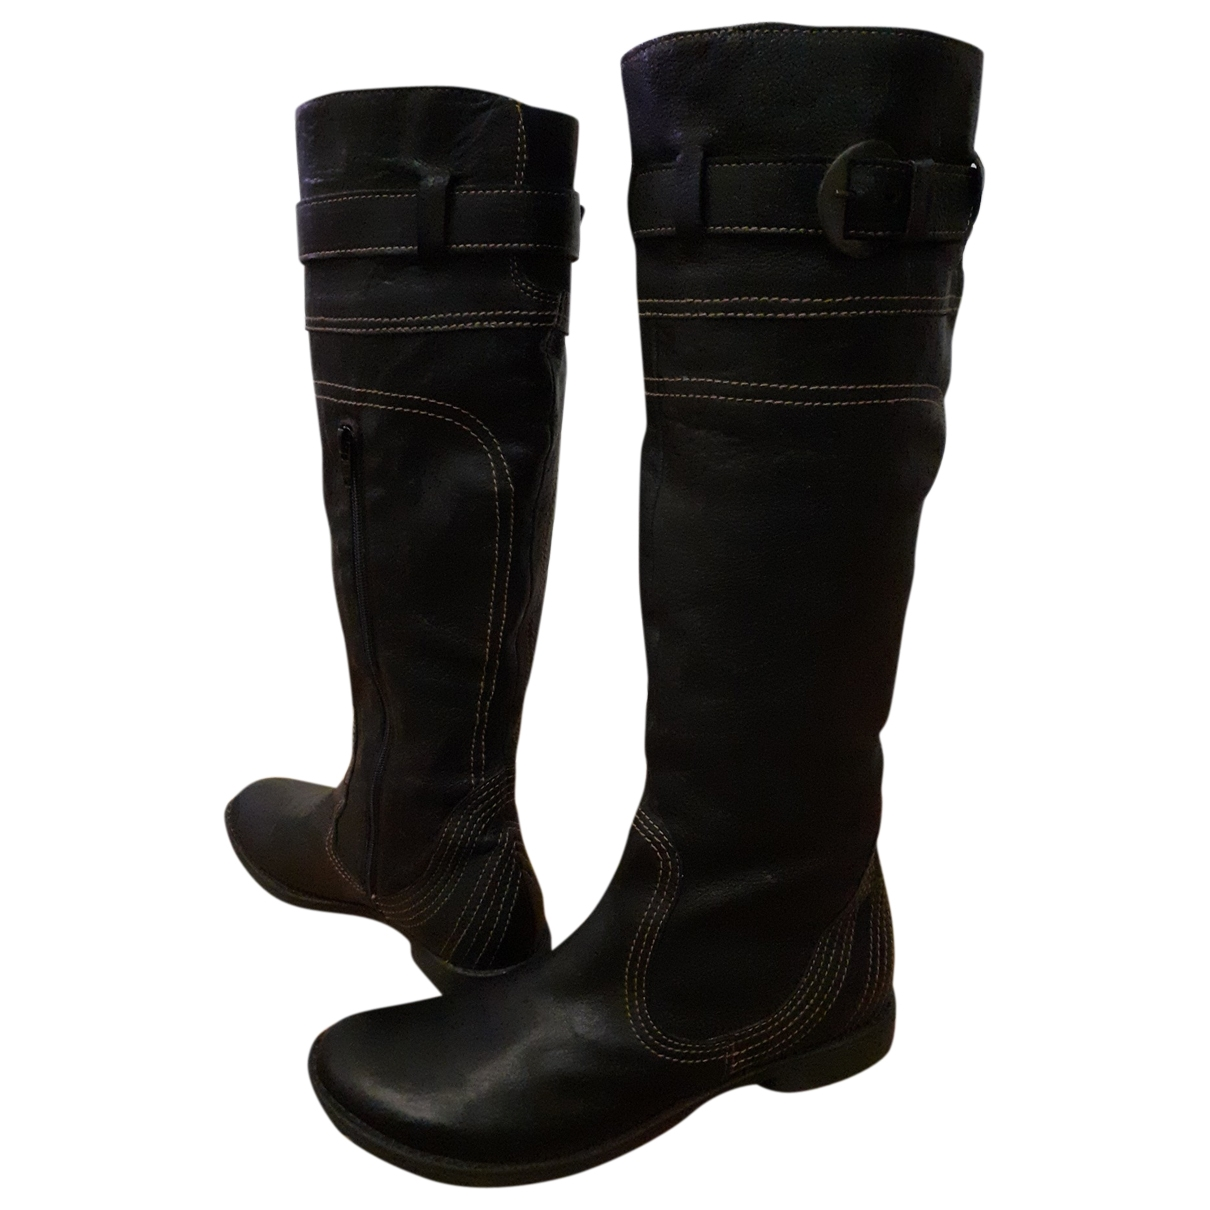 Adolfo Dominguez \N Brown Leather Boots for Women 40 EU